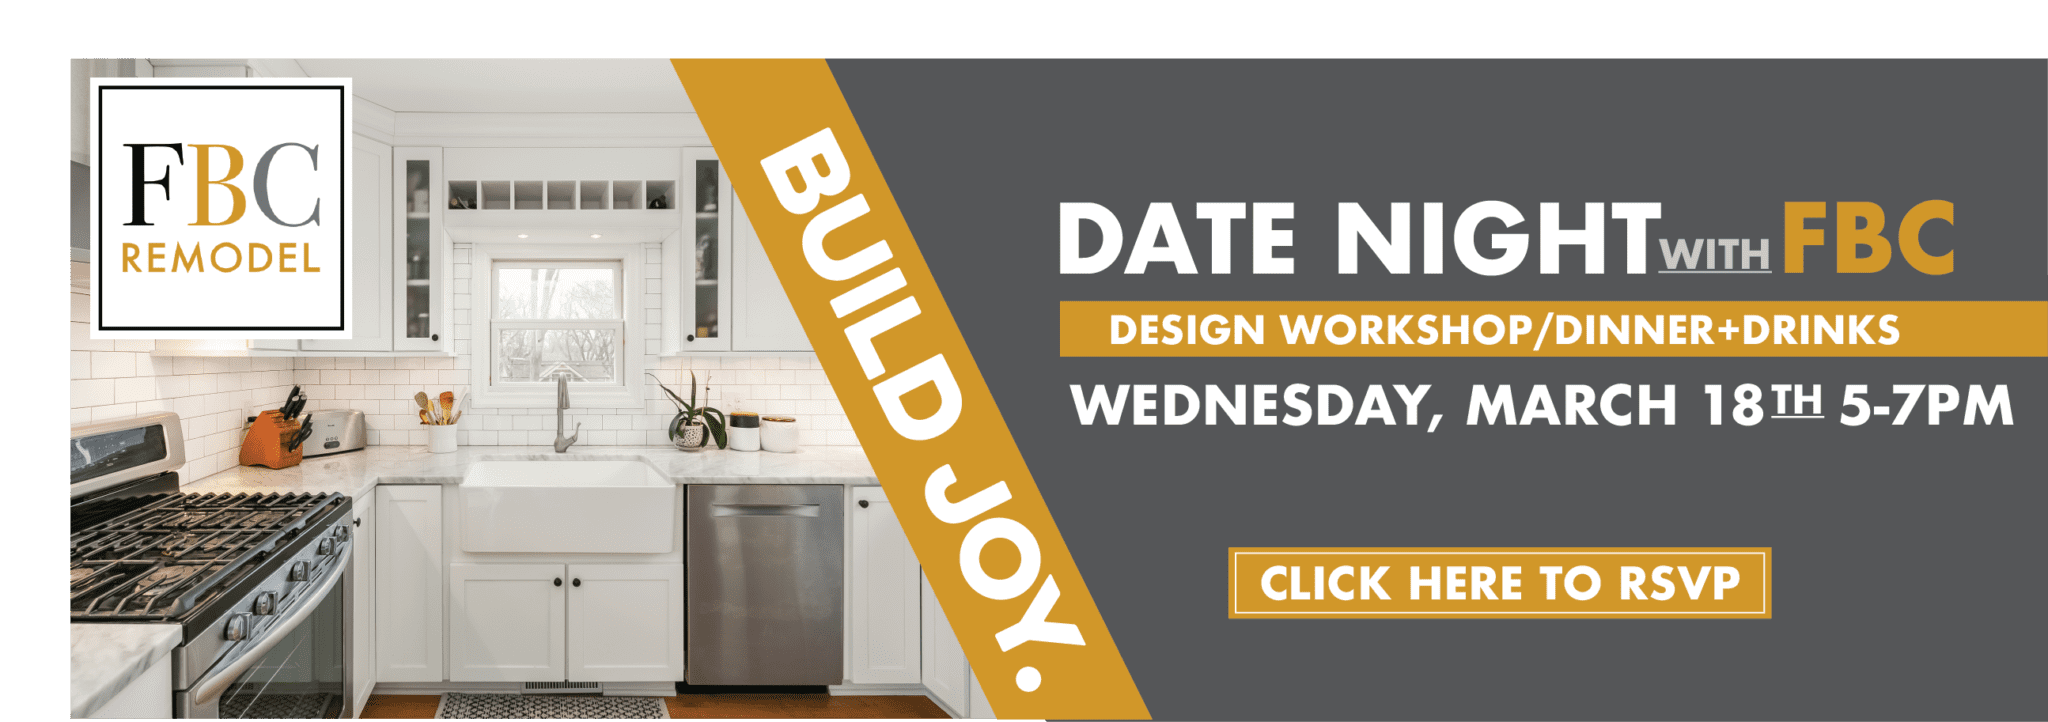 Interior Design Events in Denver CO | FBC Remodel